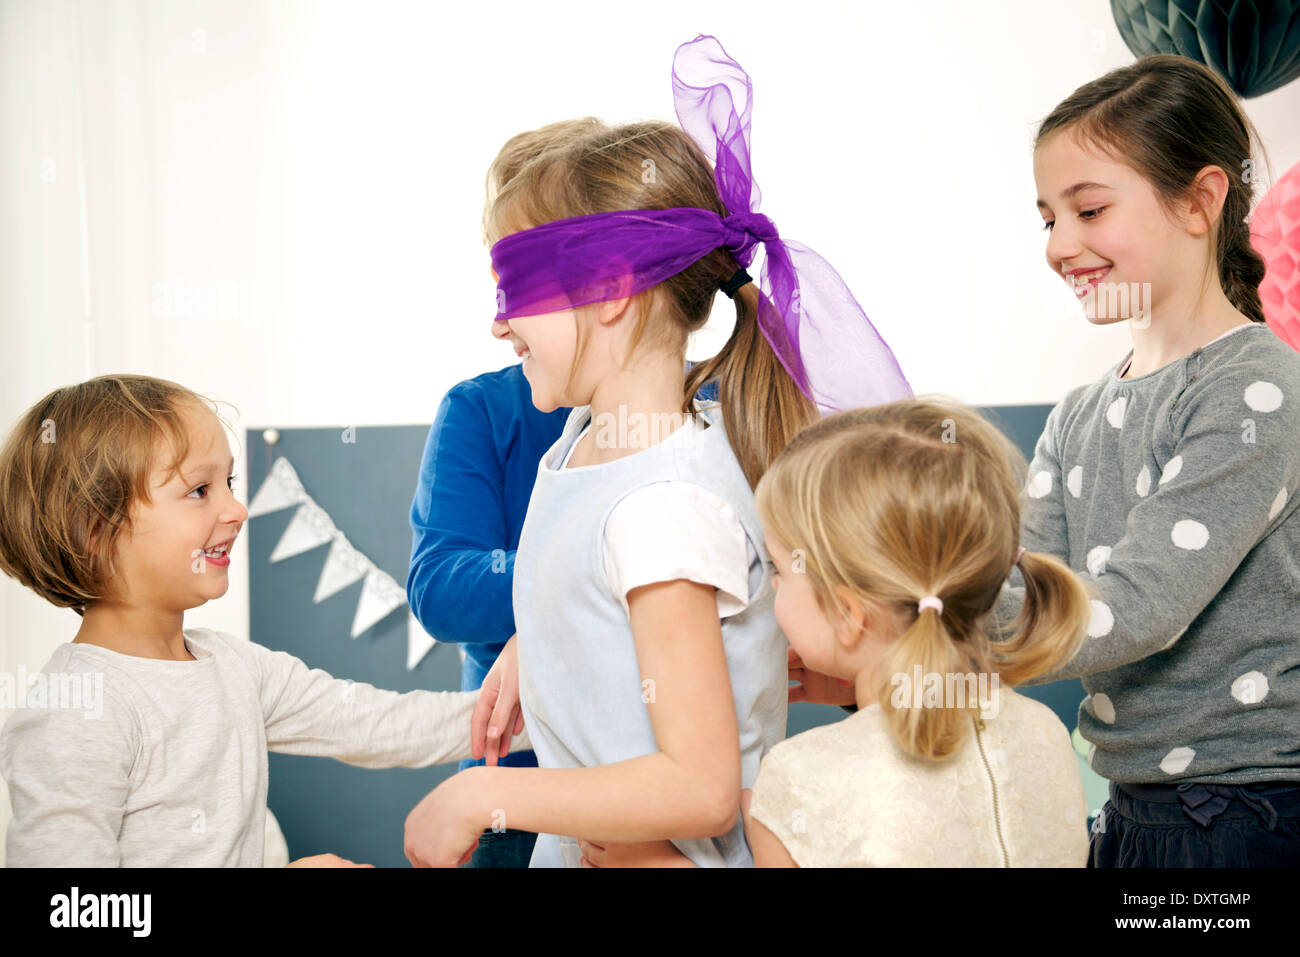 Children on birthday party playing Blind Man's Bluff, Munich, Bavaria, Germany - Stock Image